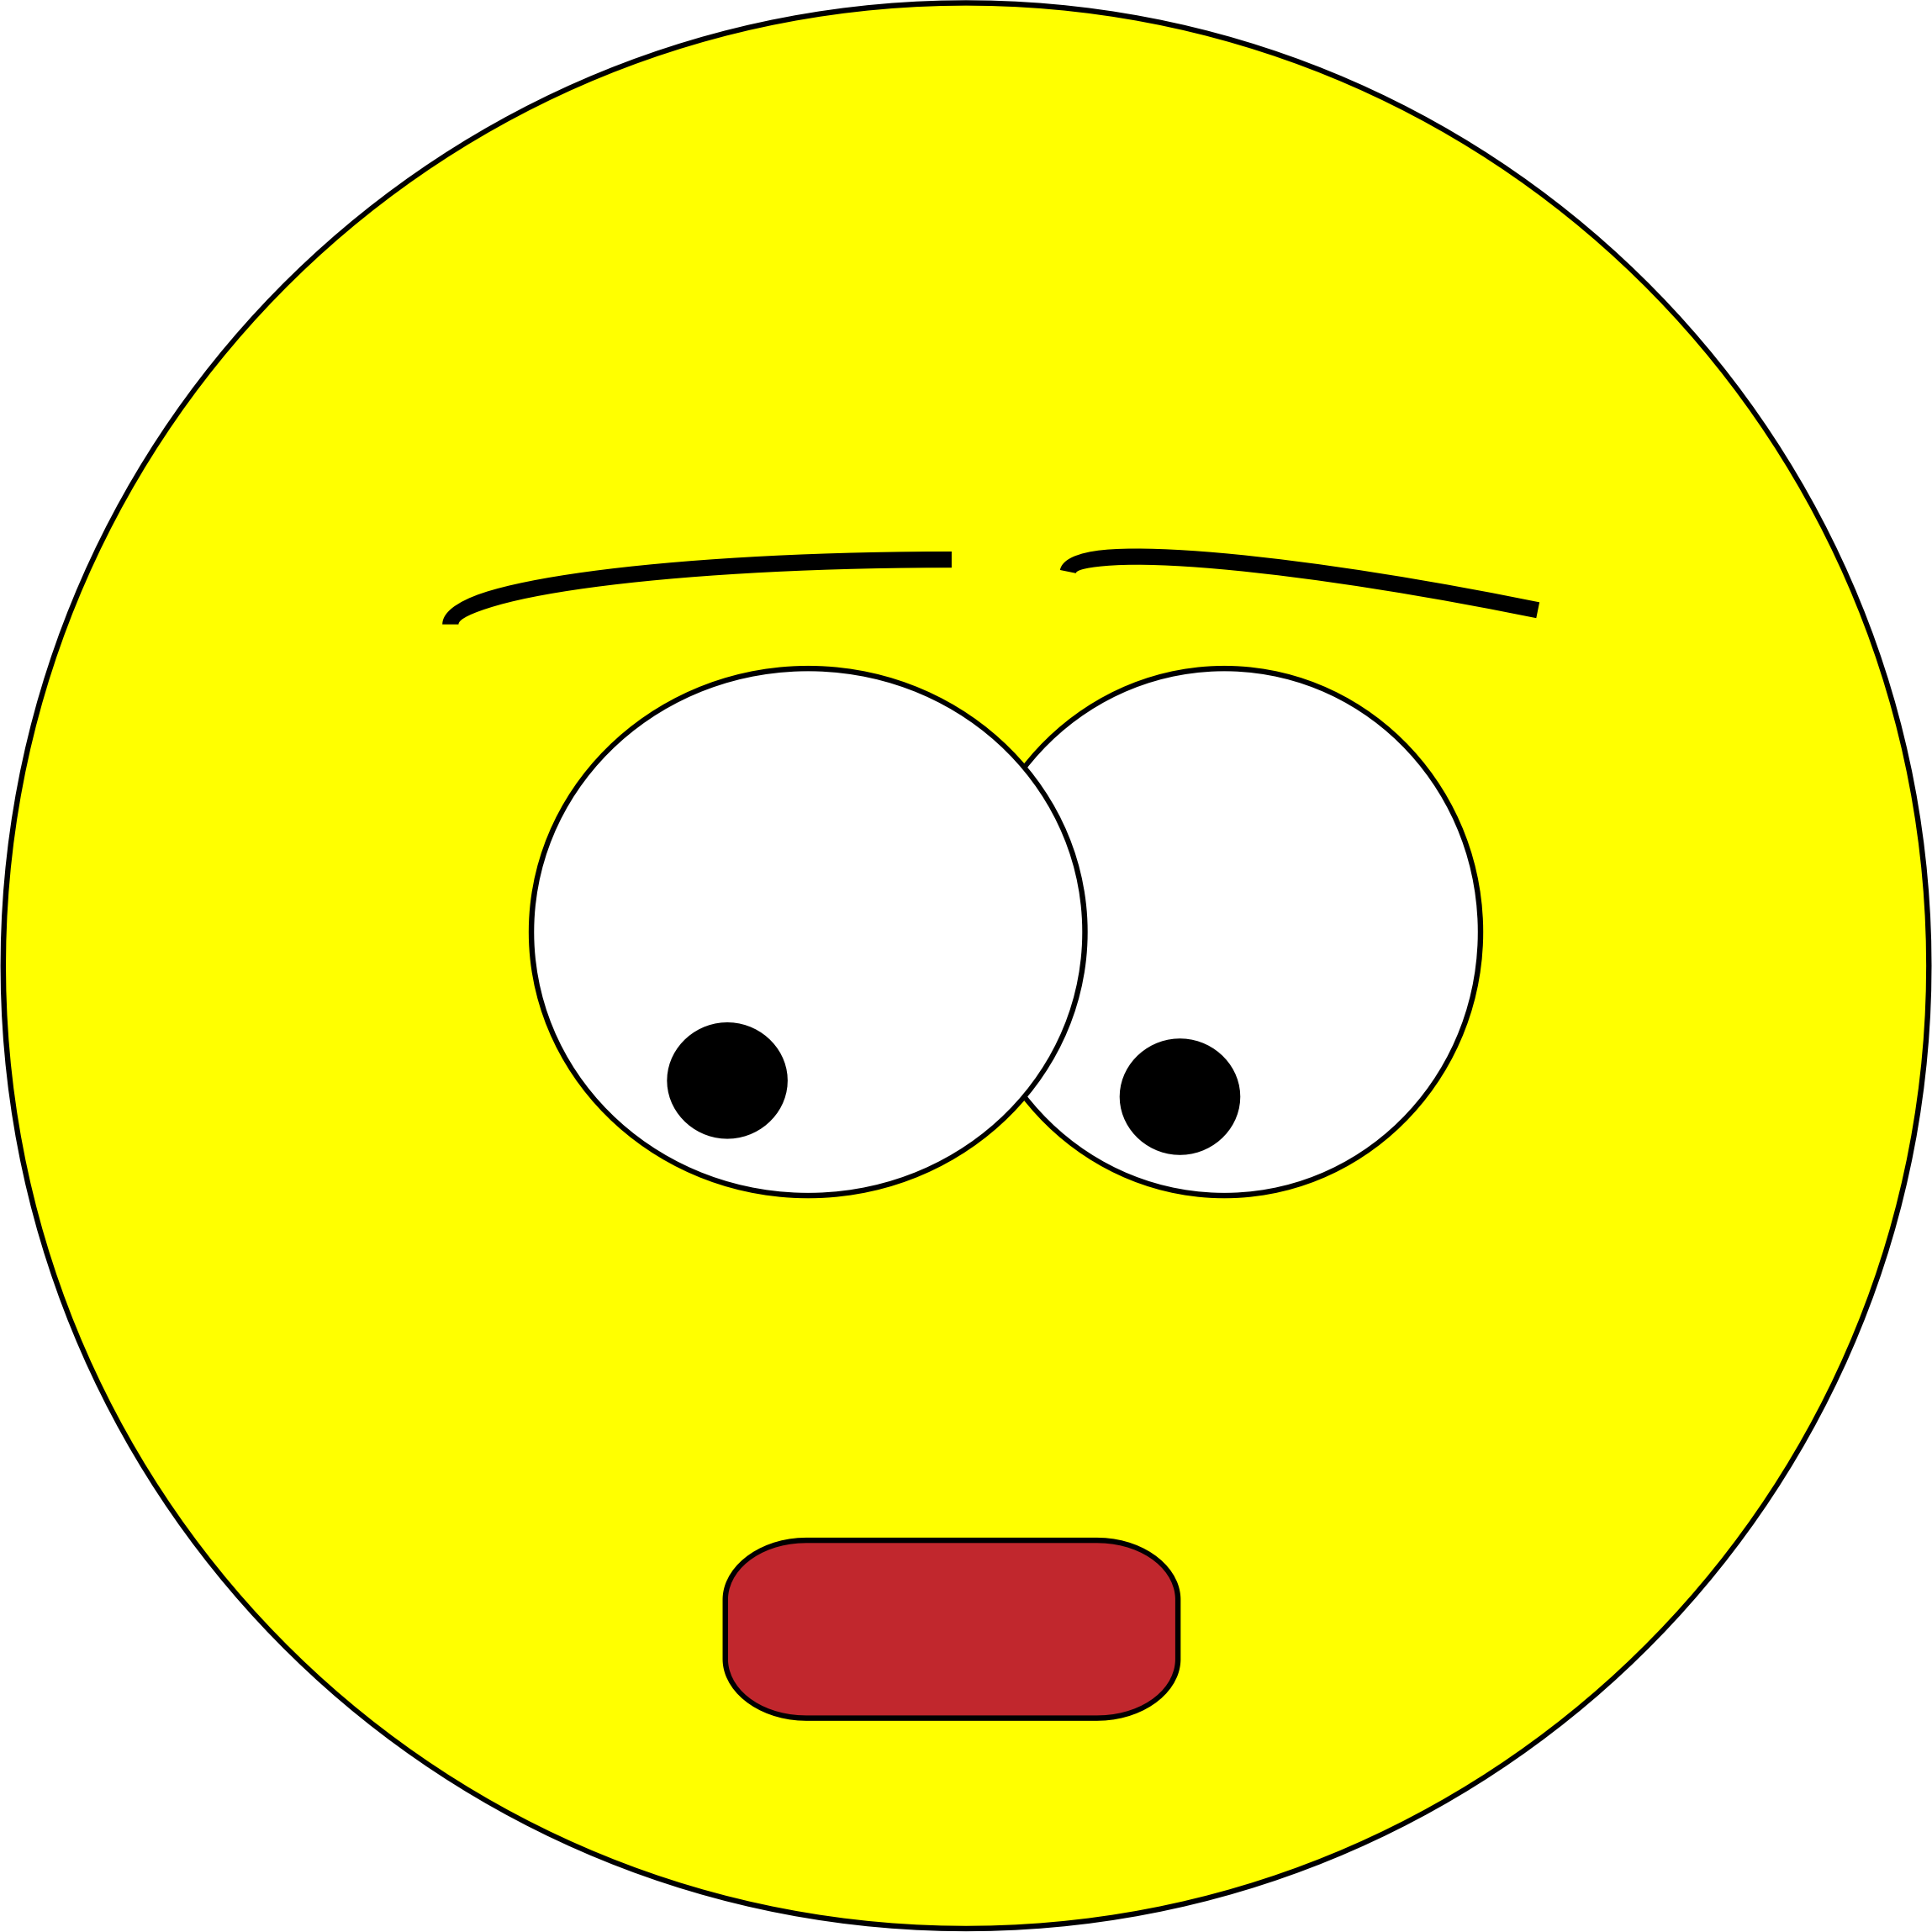 Circle clipart yellow. Face scared big image